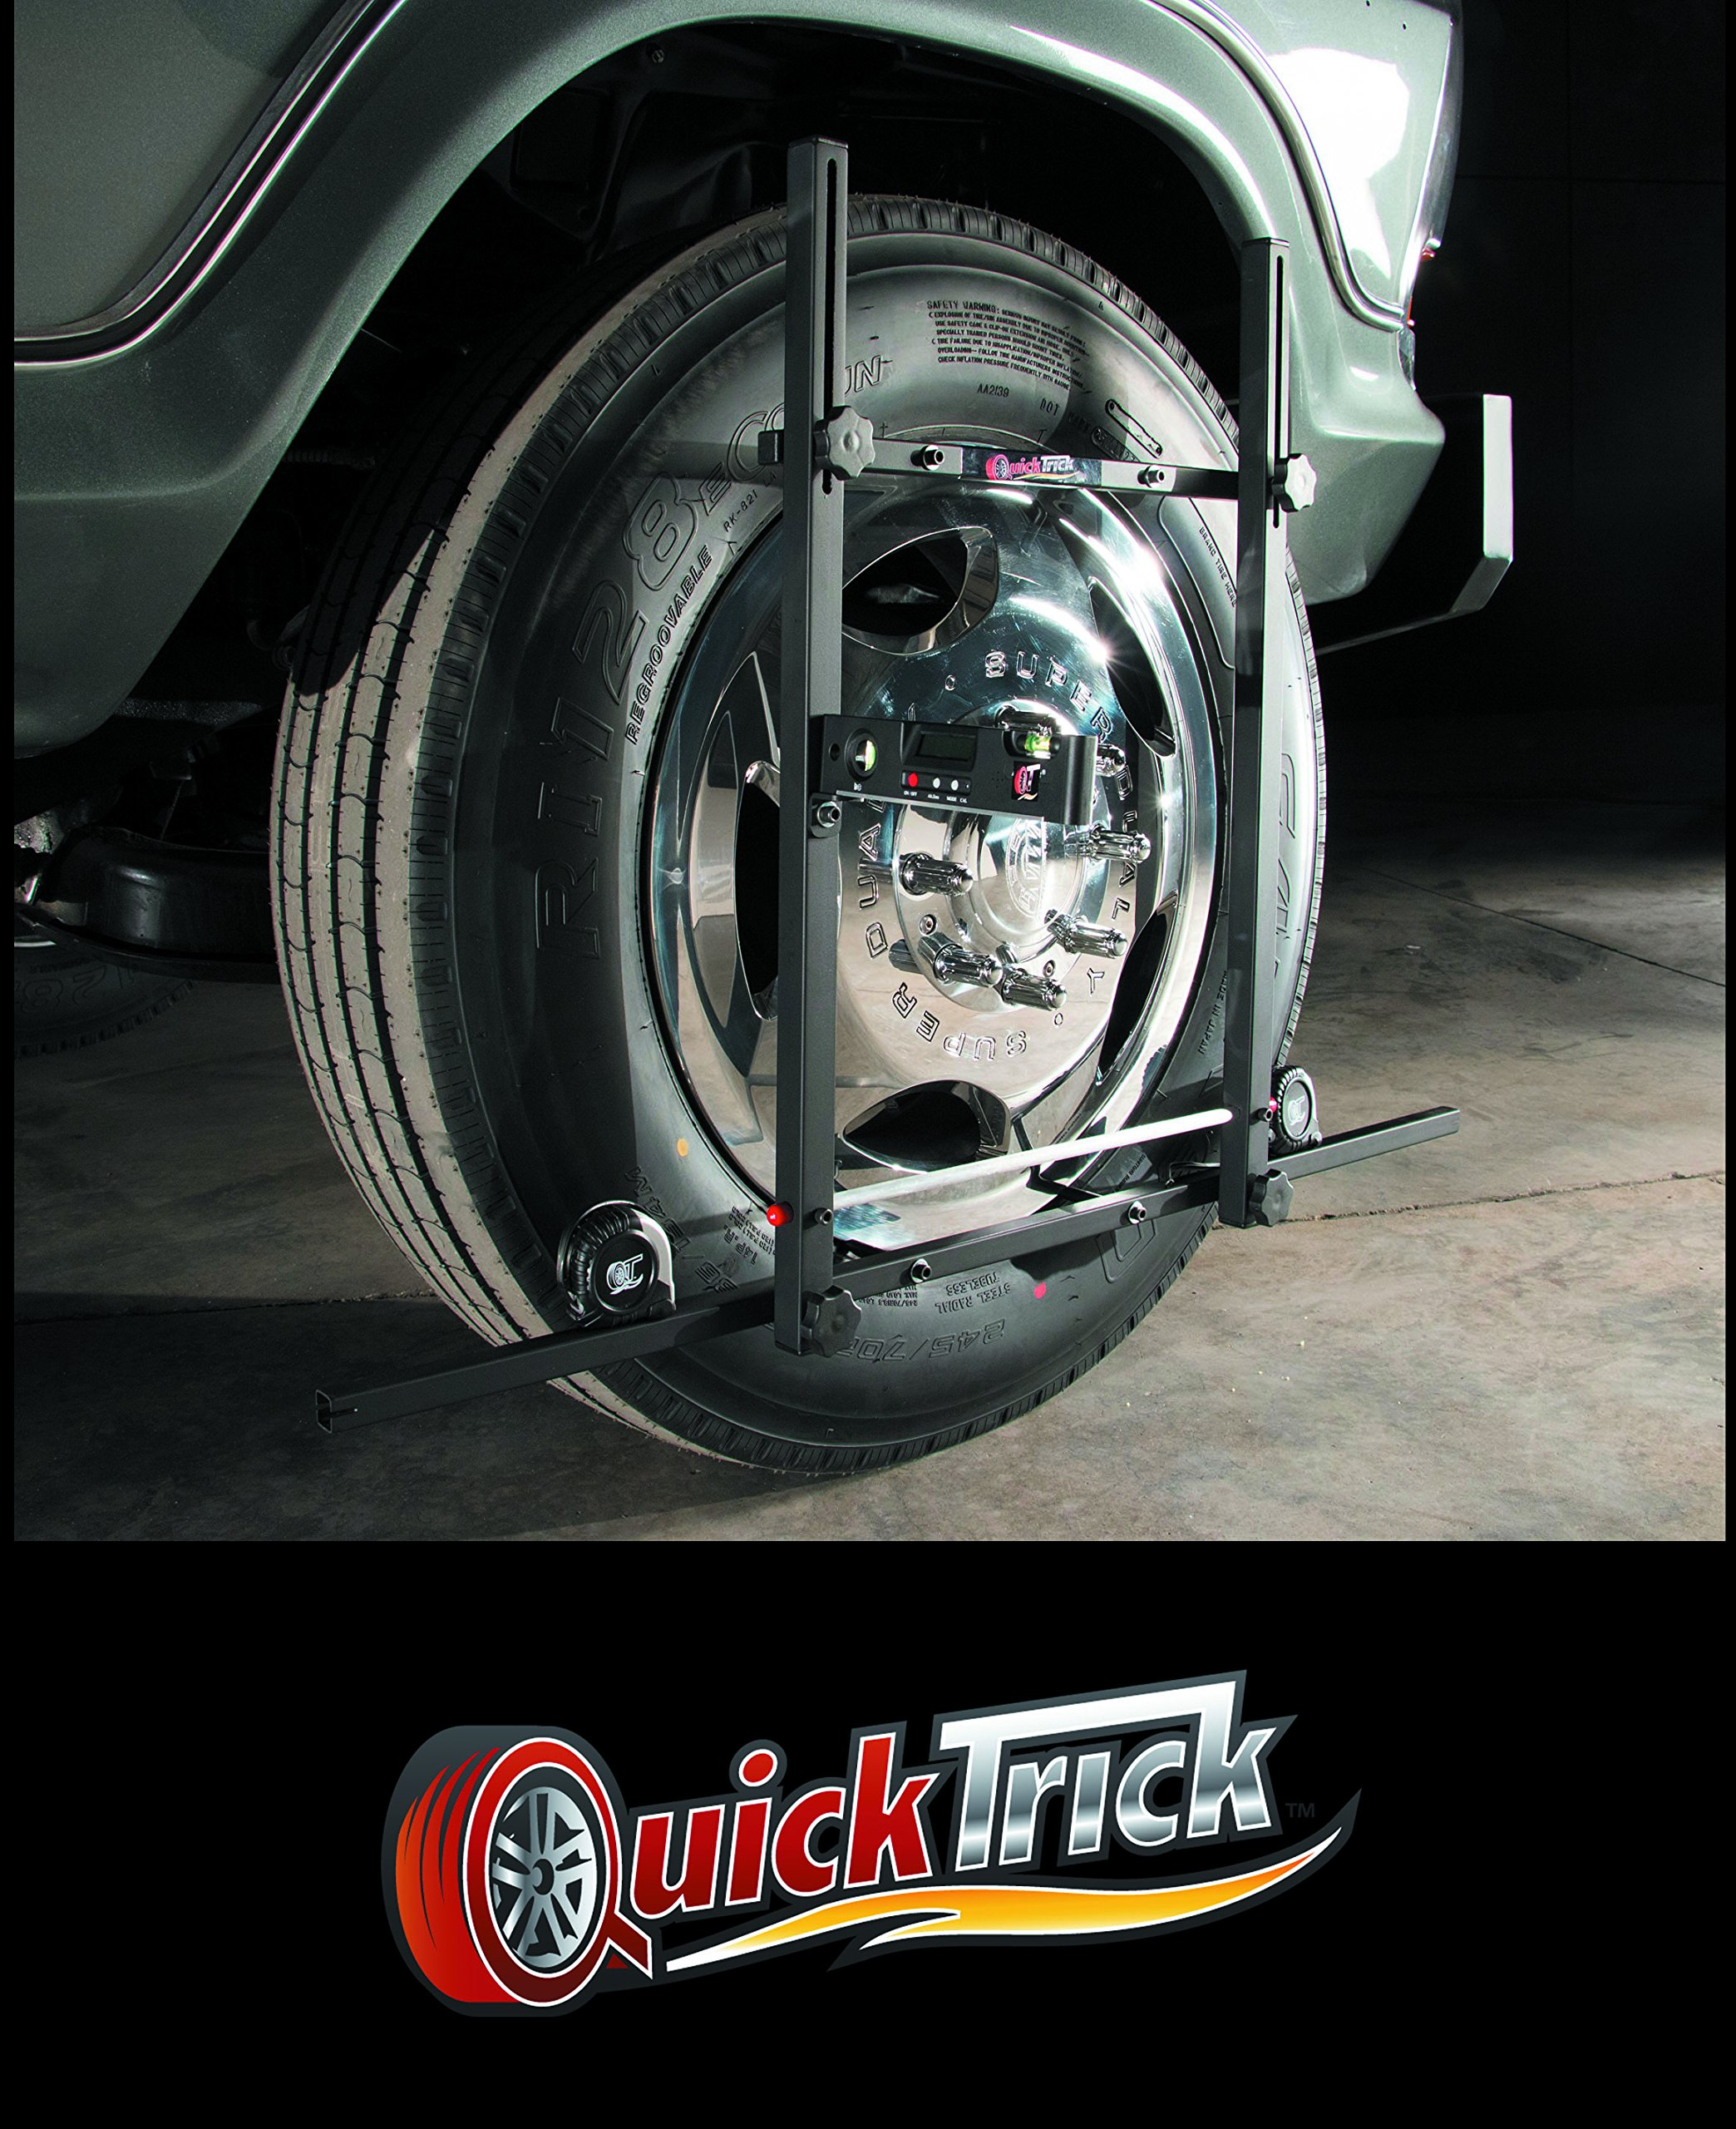 Large Wheel Alignment Kit Complete for both sides - Truck, Semi, Bus, Firetruck by QuickTrick (Image #7)